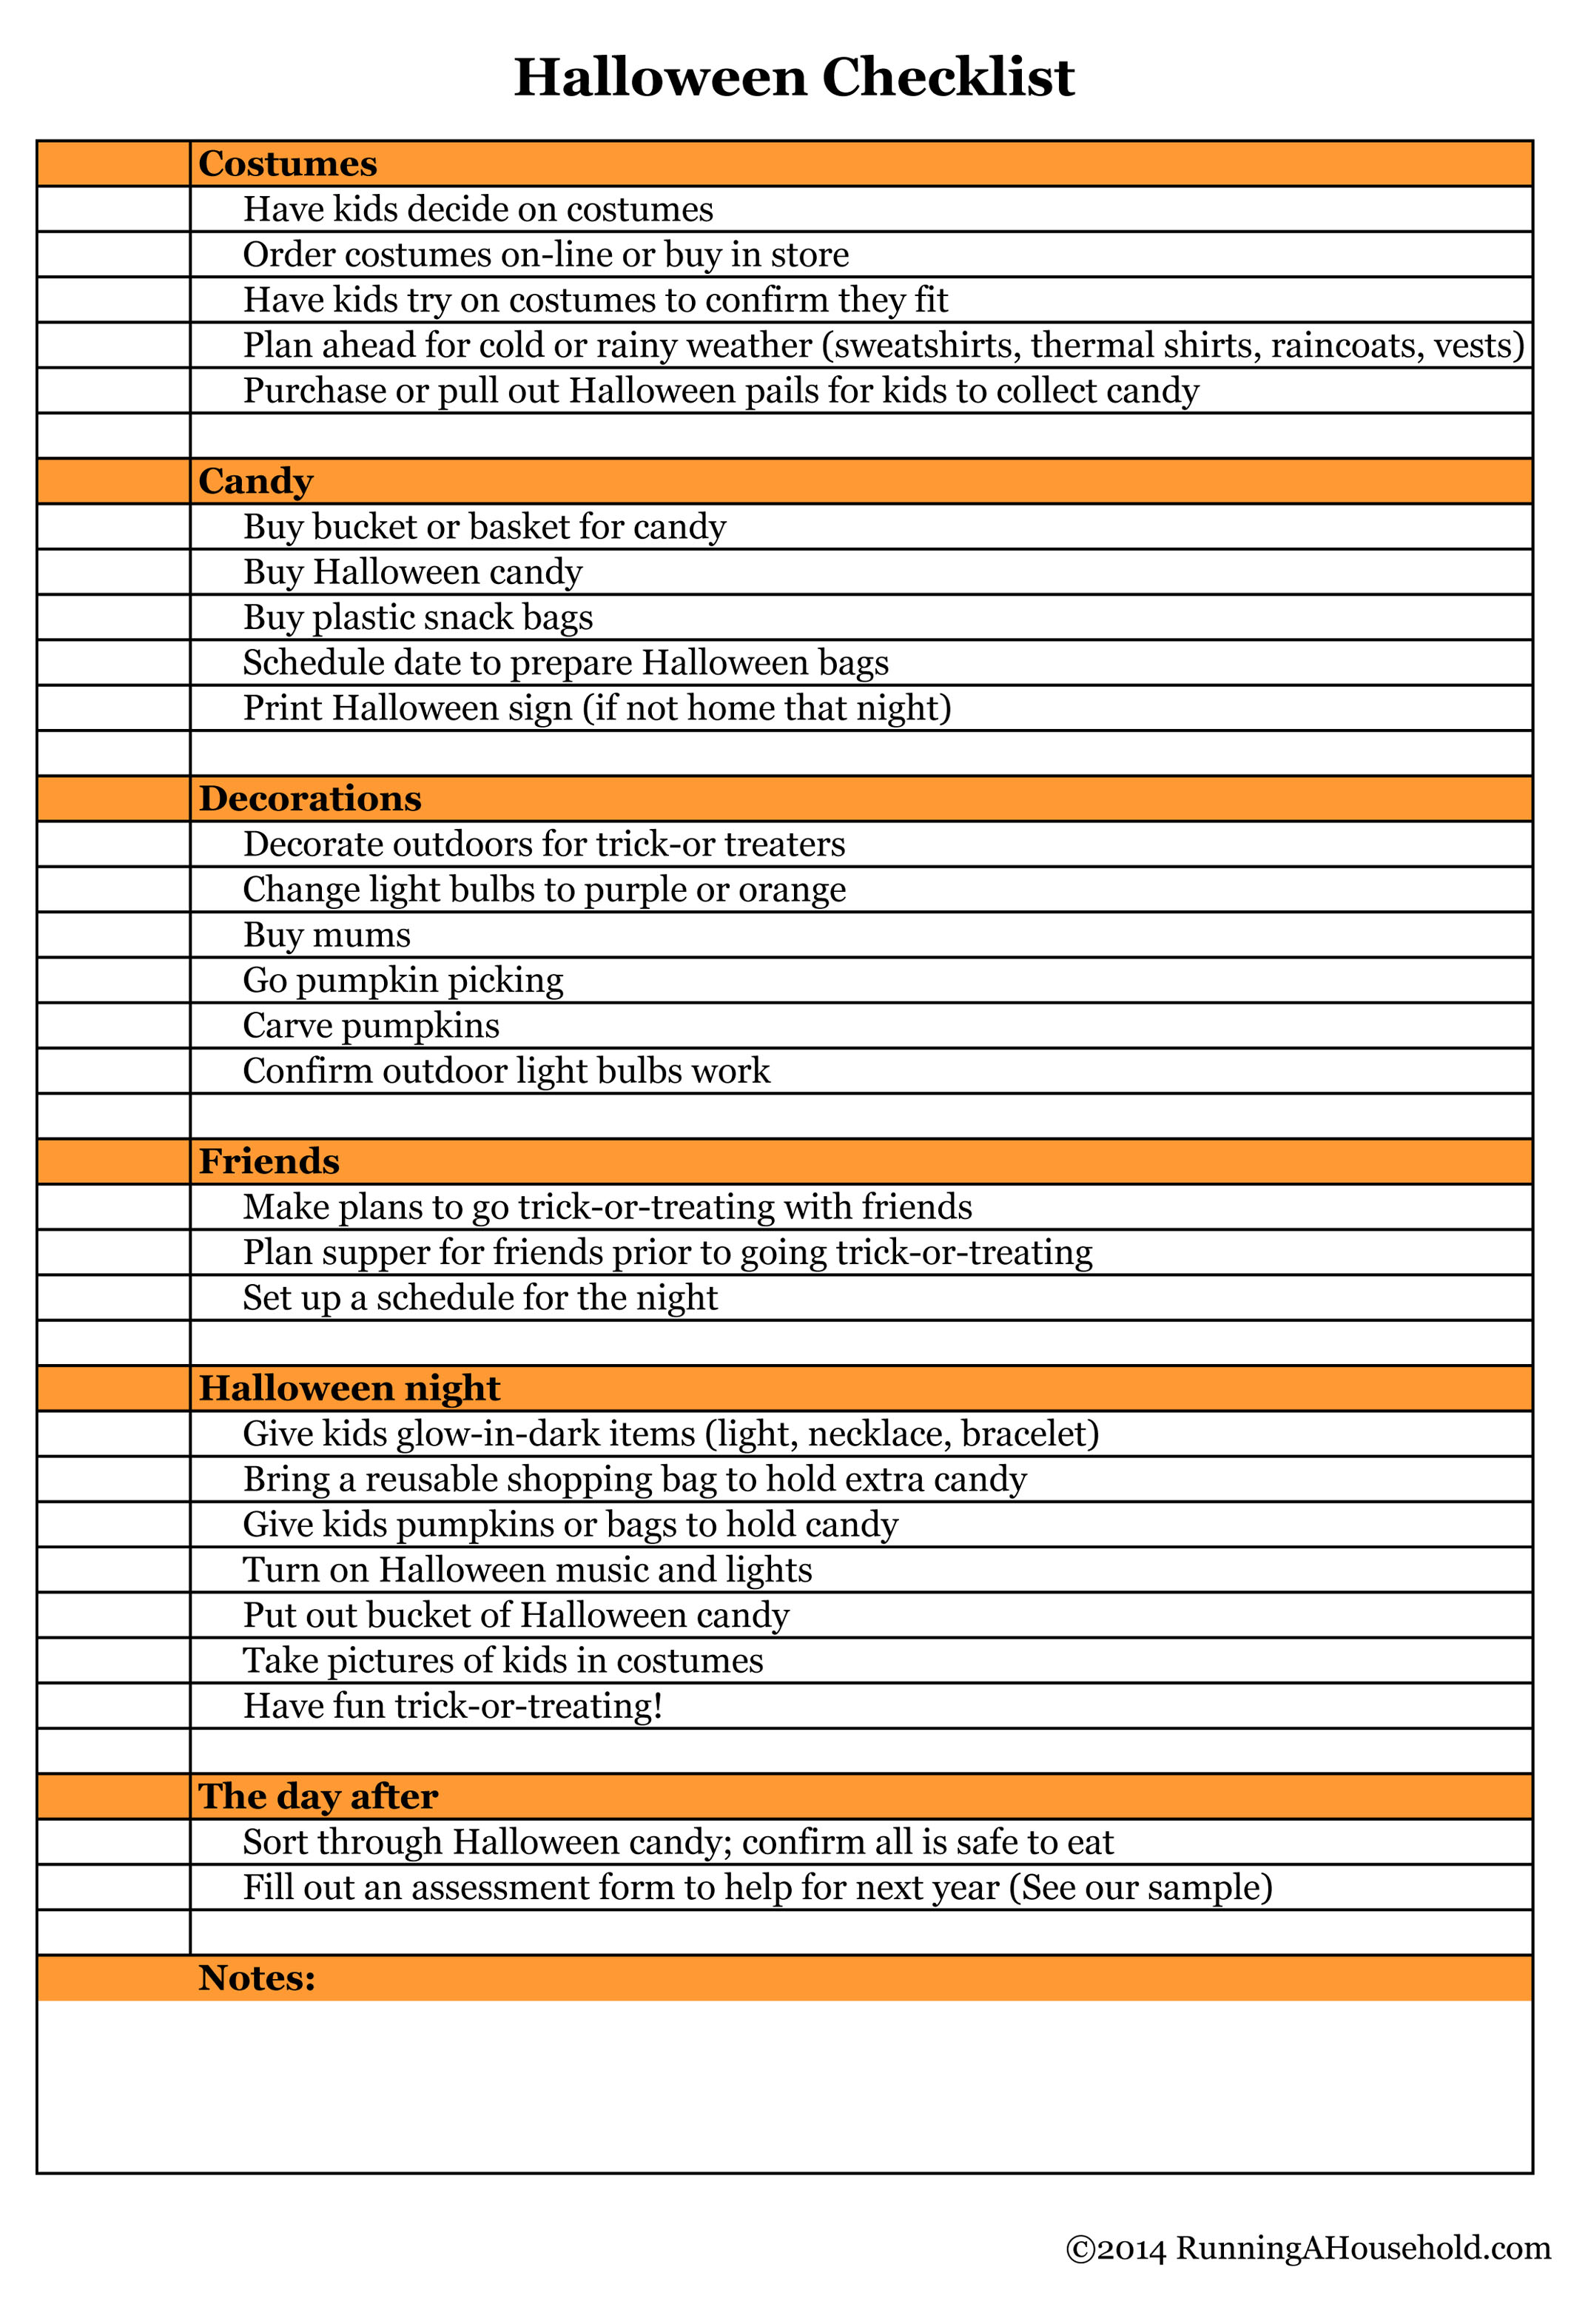 Halloween Checklist Archives